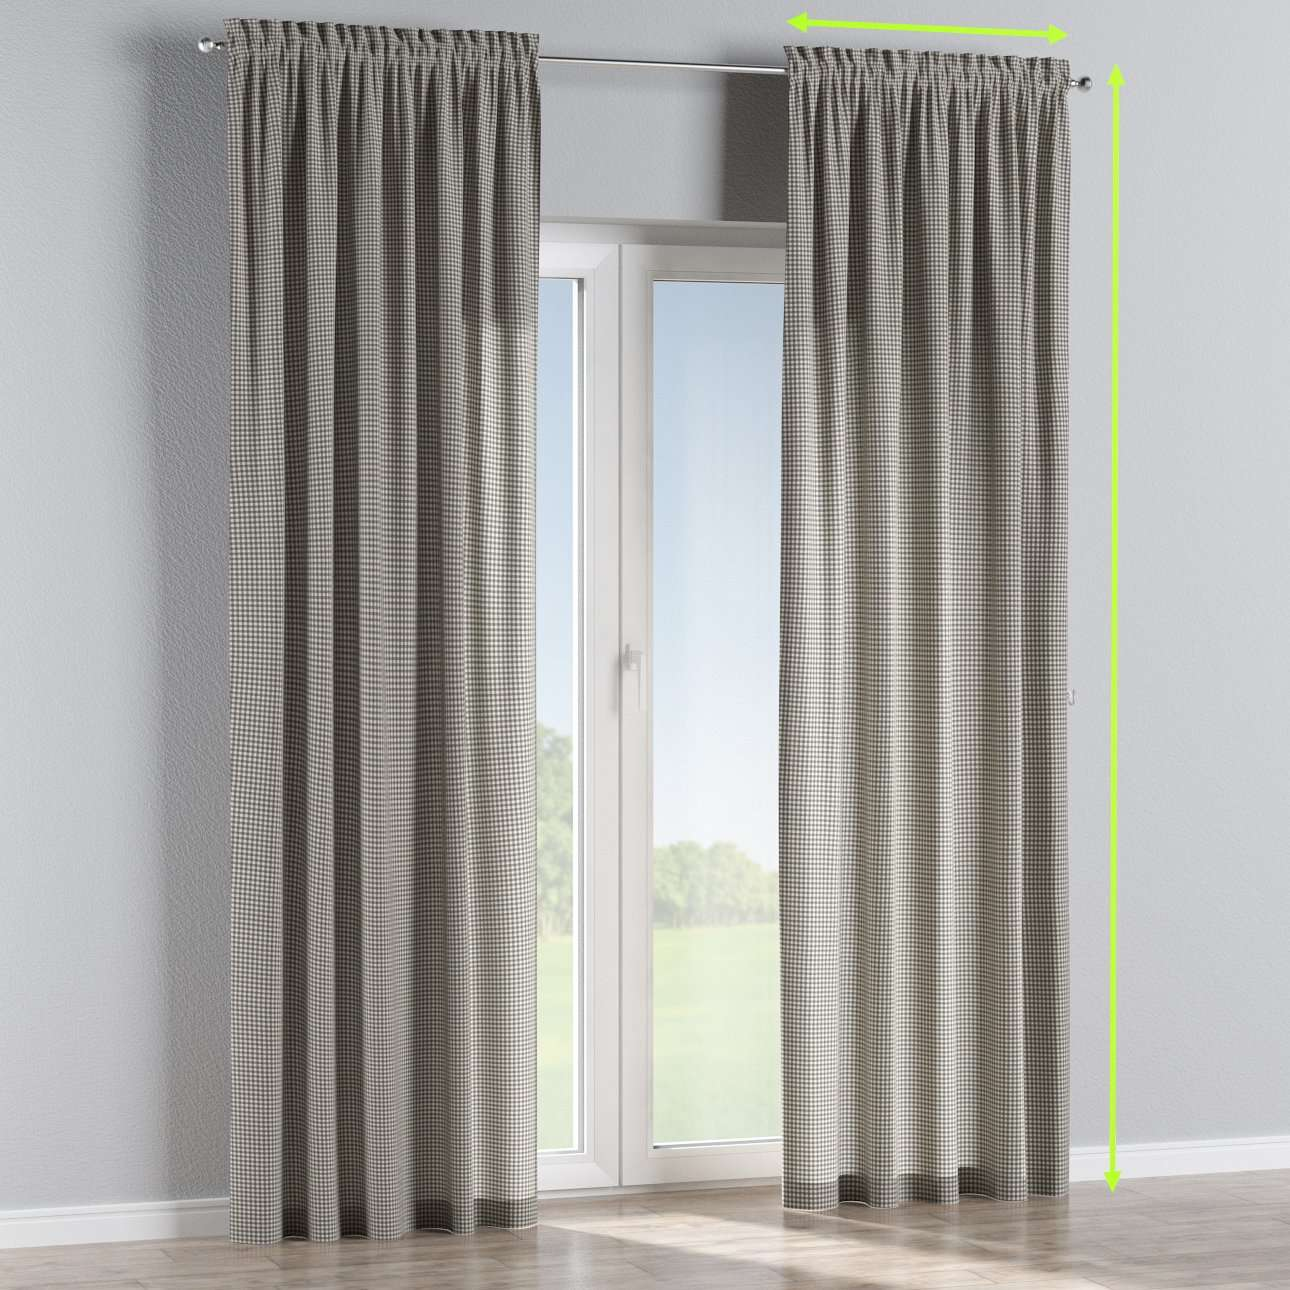 Slot and frill curtains in collection Quadro, fabric: 136-10